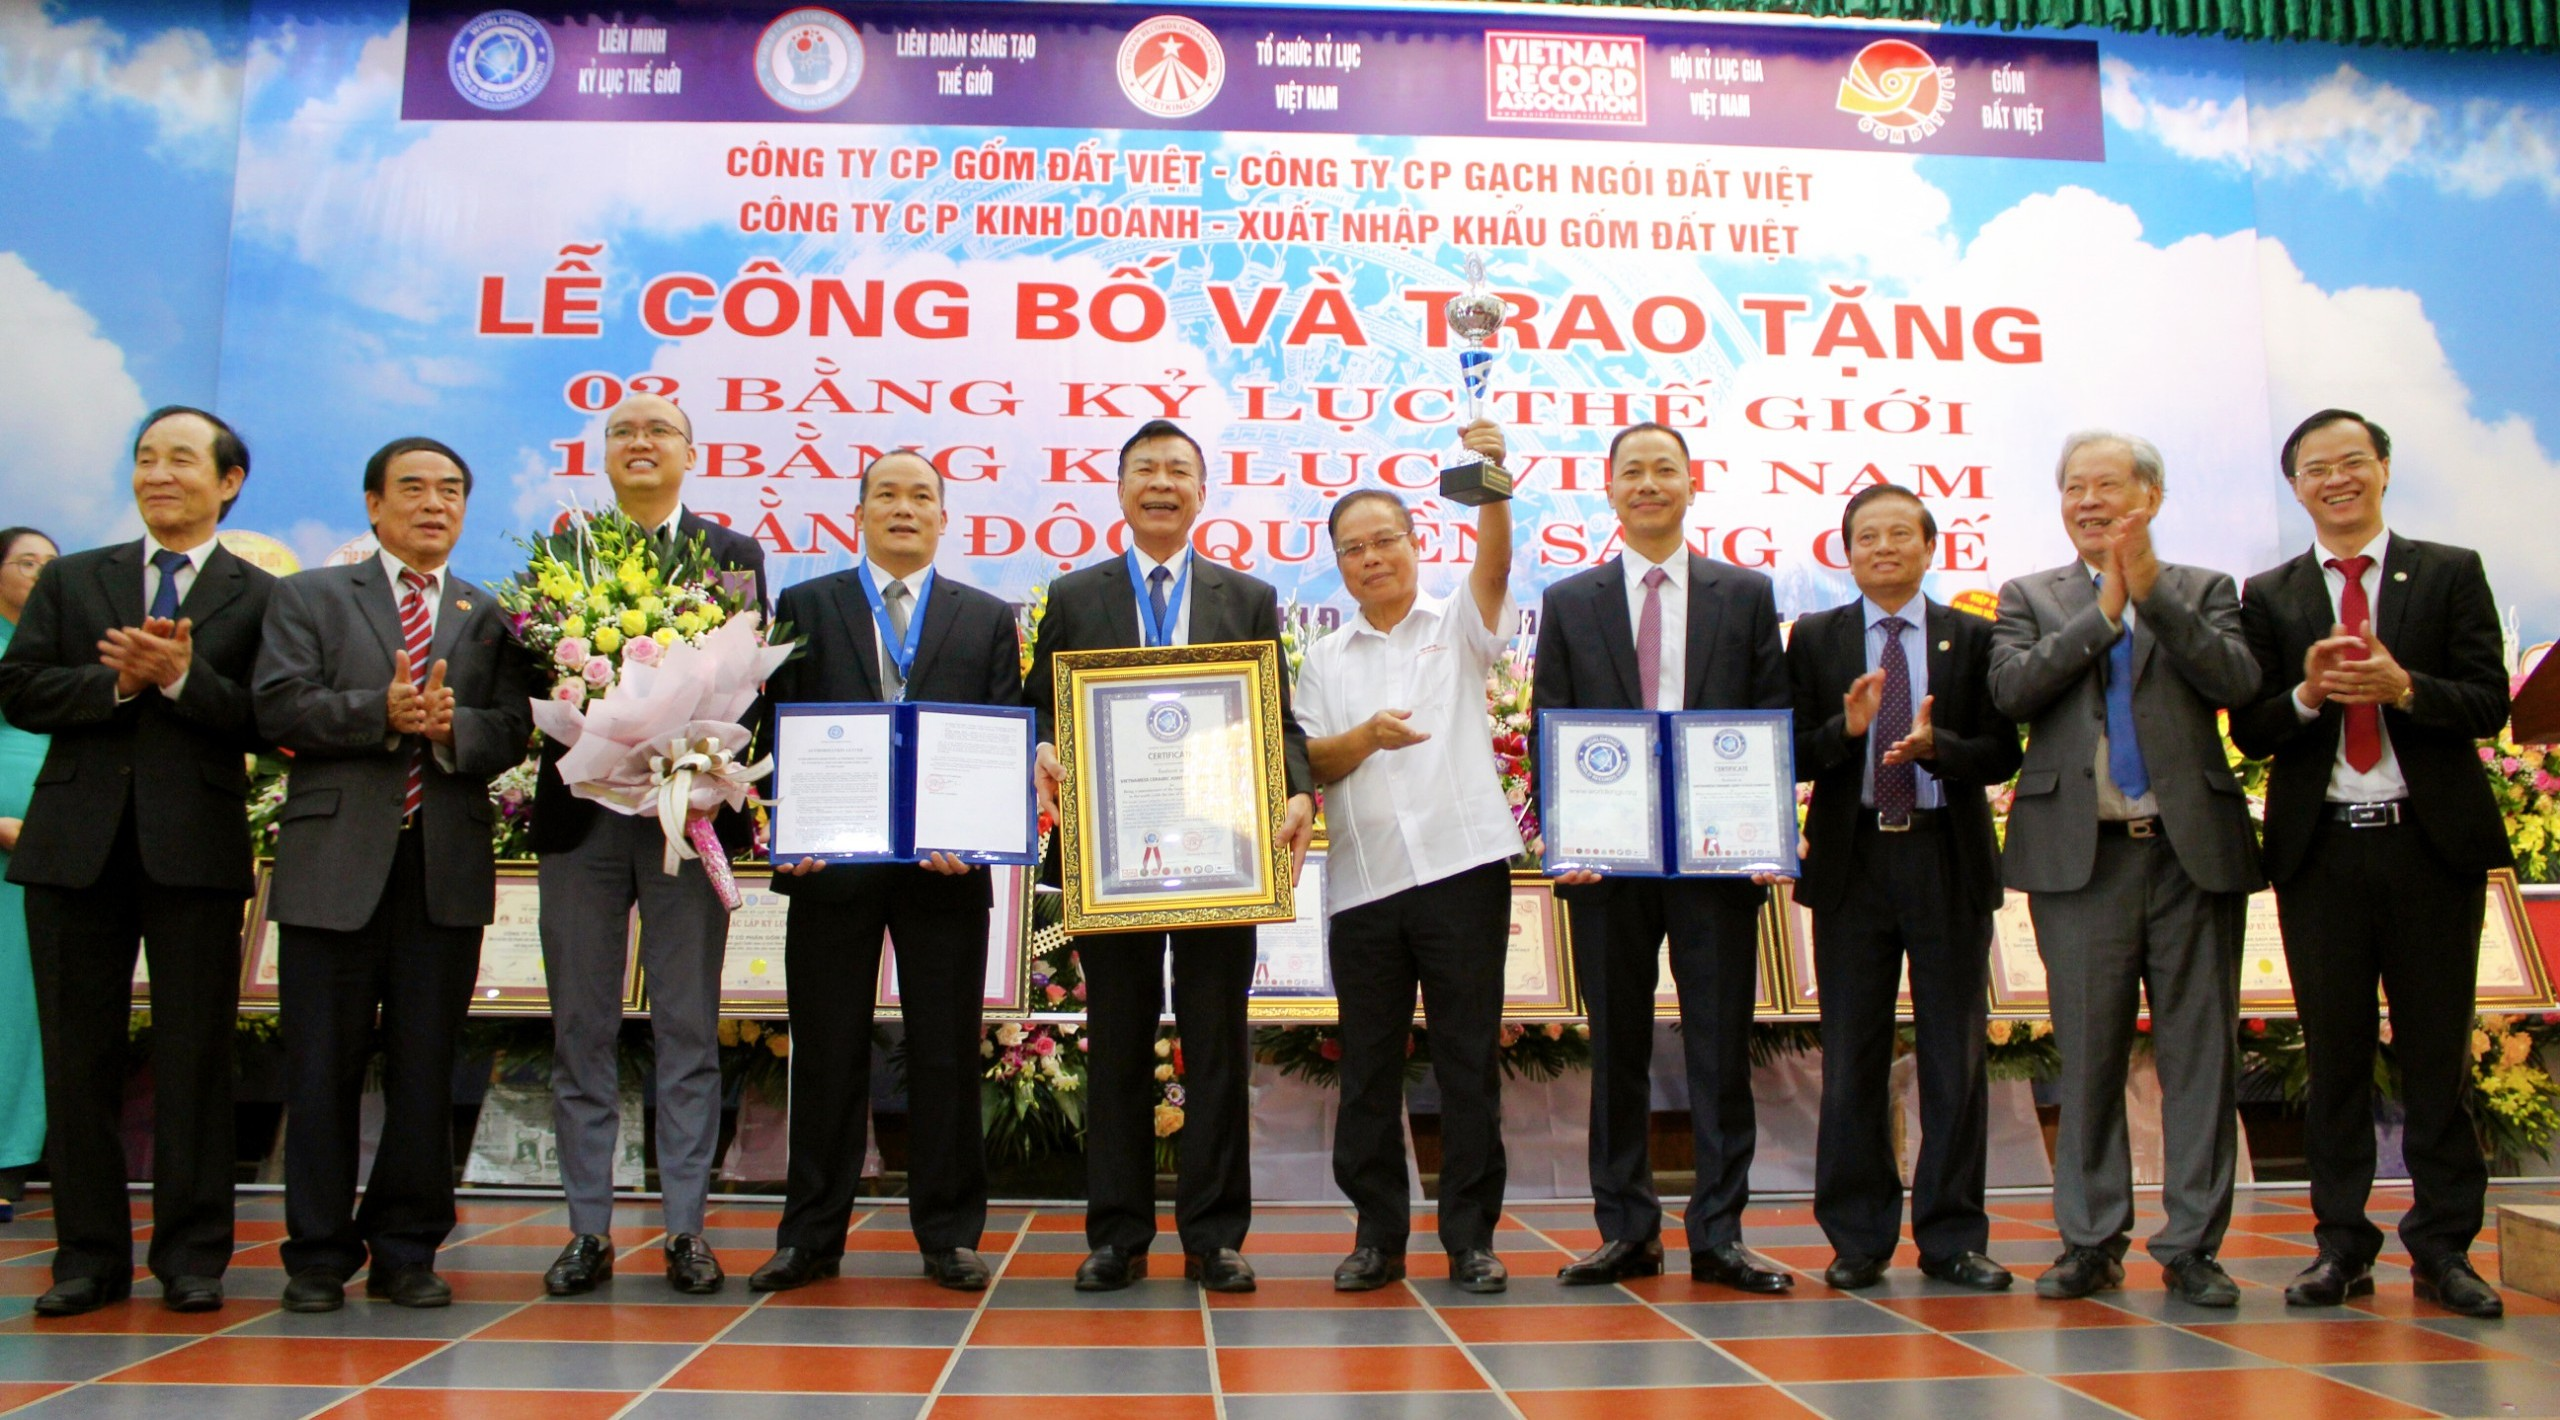 DAT VIET CERAMICS is honored to receive 02 world records.